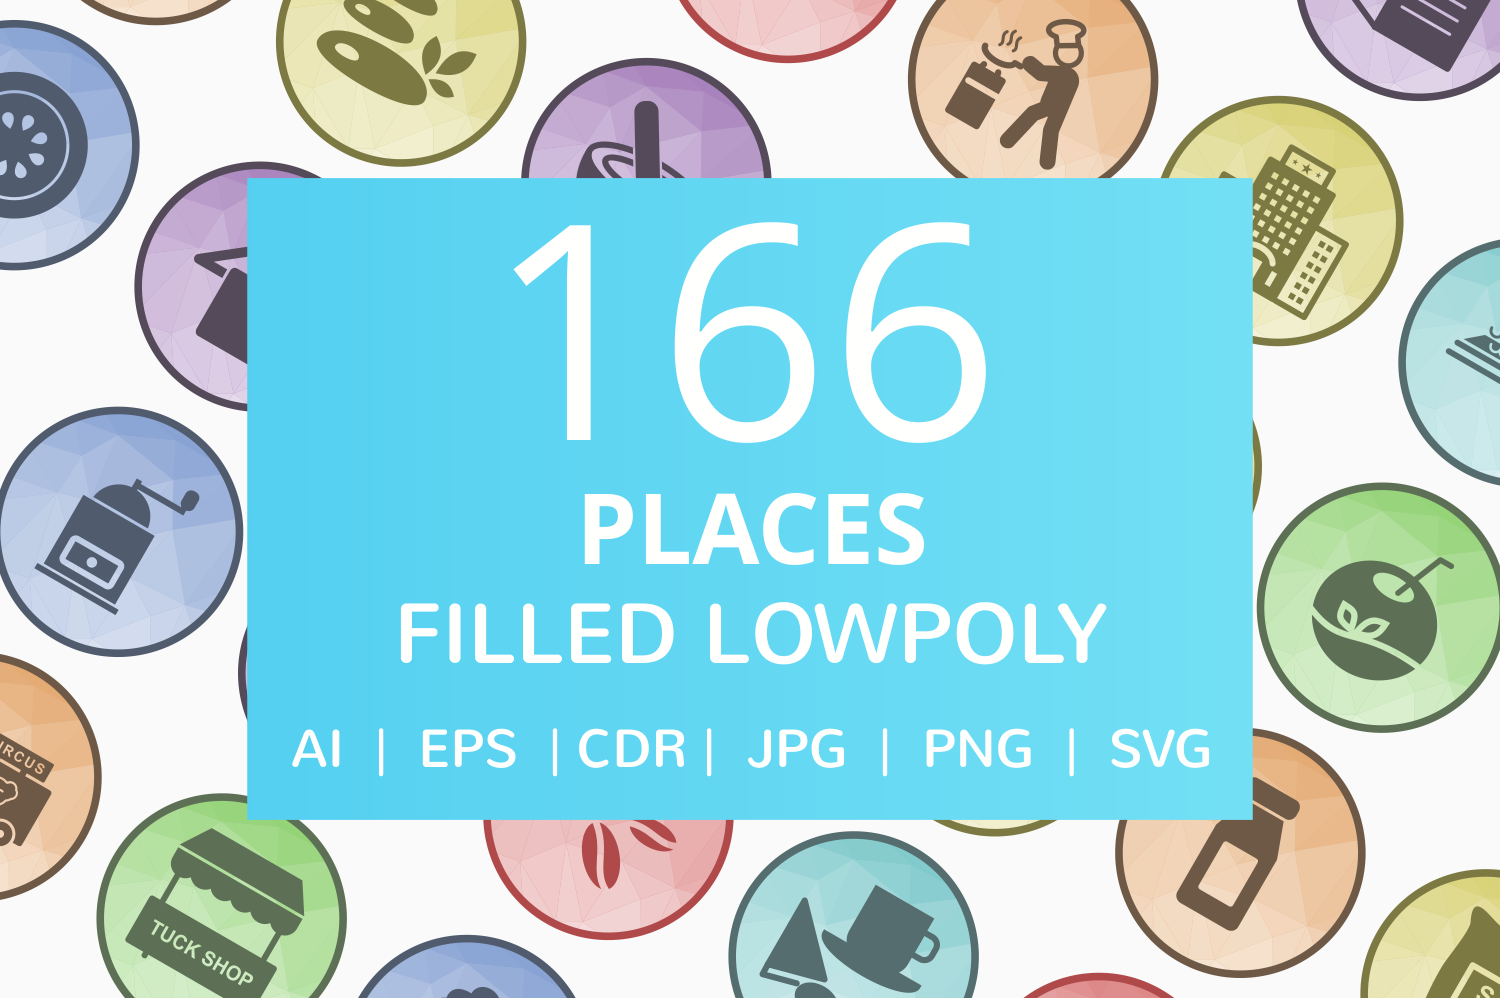 166 Places Filled Low Poly Icons example image 1